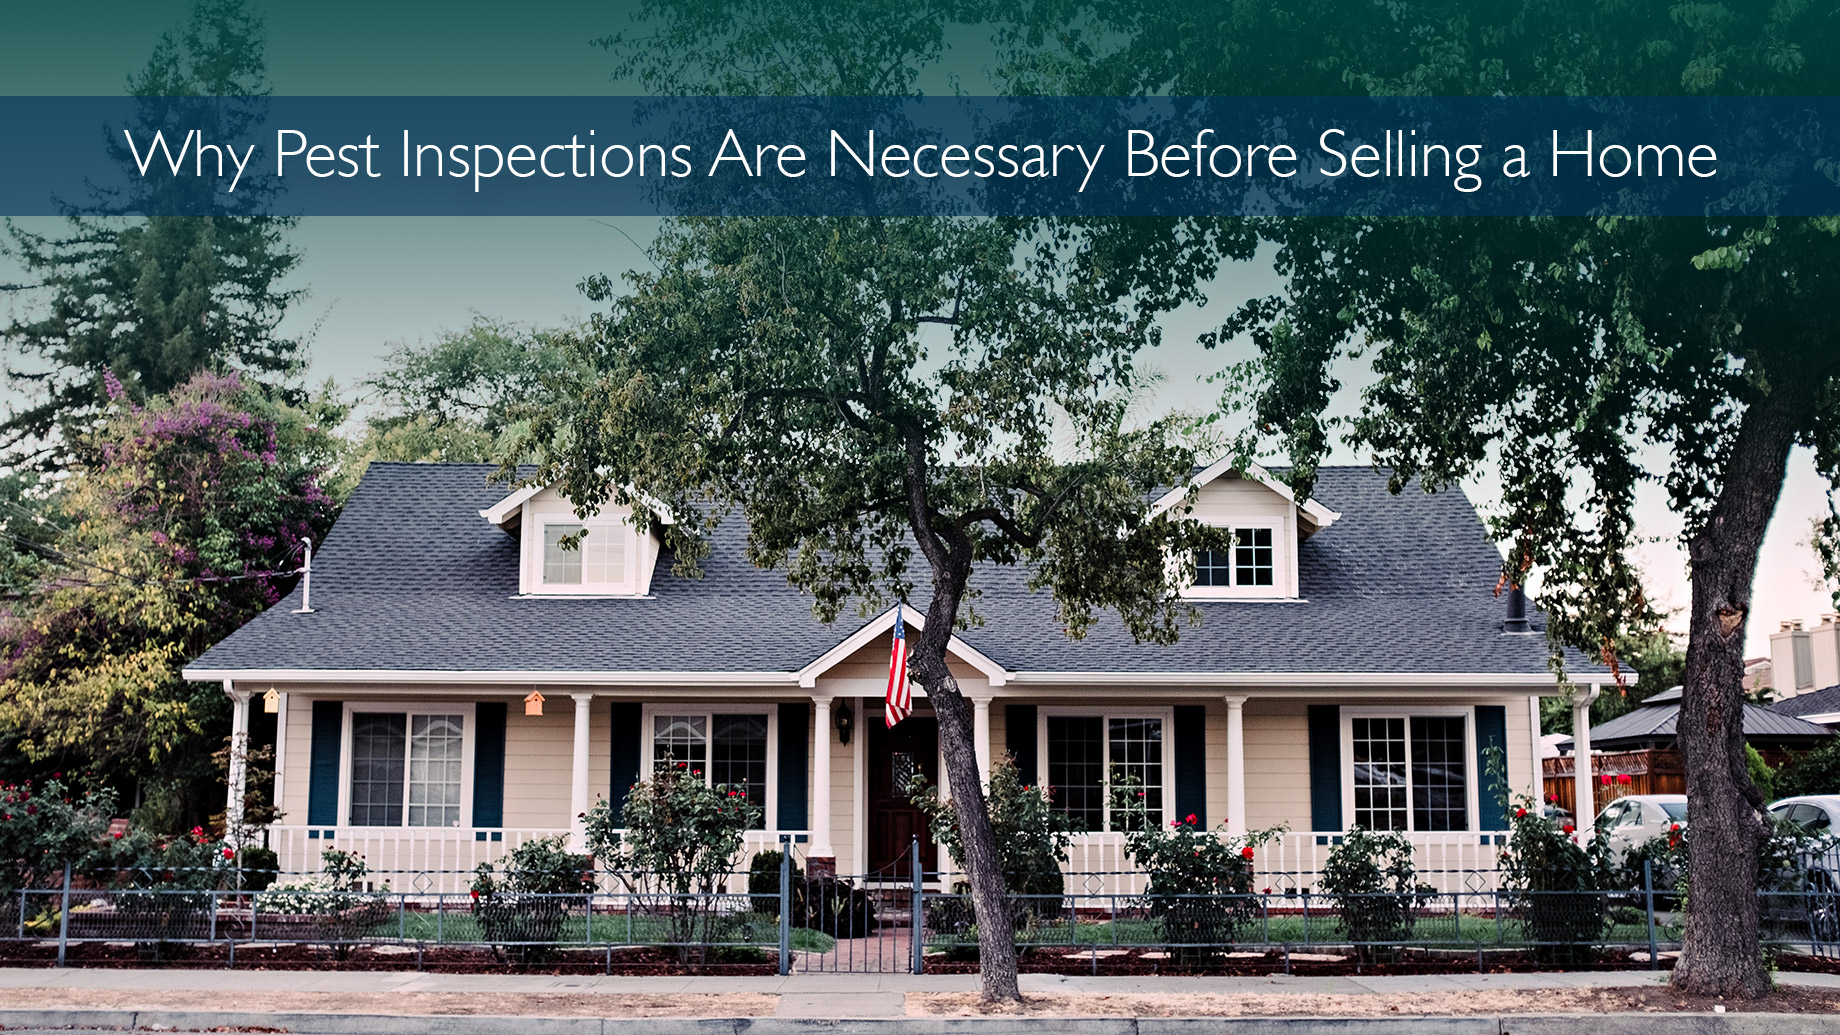 Why Pest Inspections Are Necessary Before Selling a Home